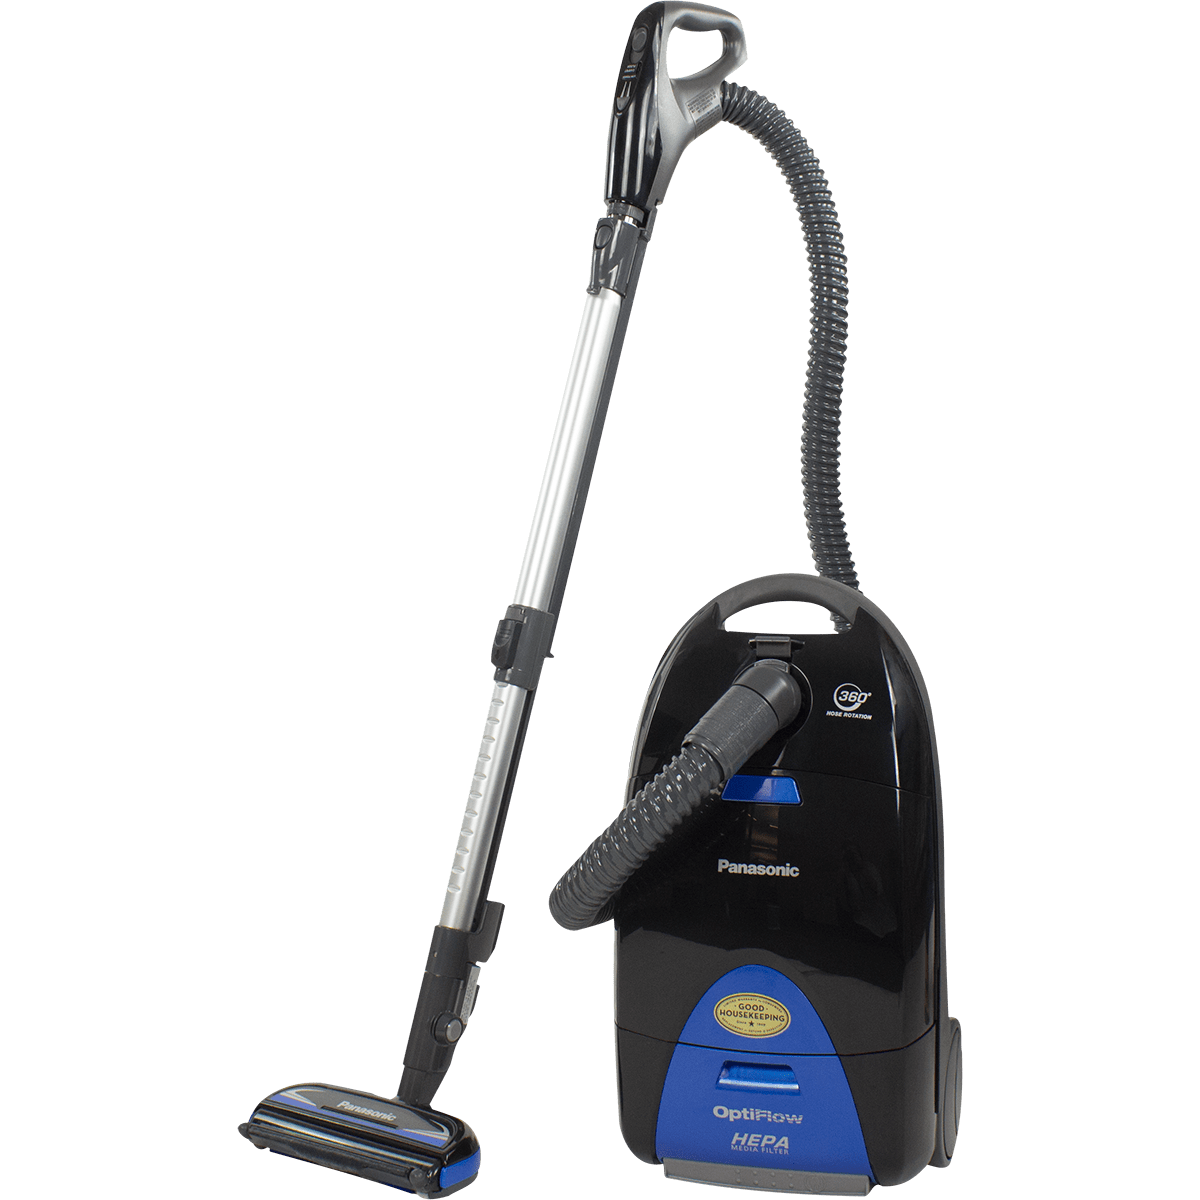 the panasonic mccg957 is great for all carpet types - Panasonic Canister Vacuum